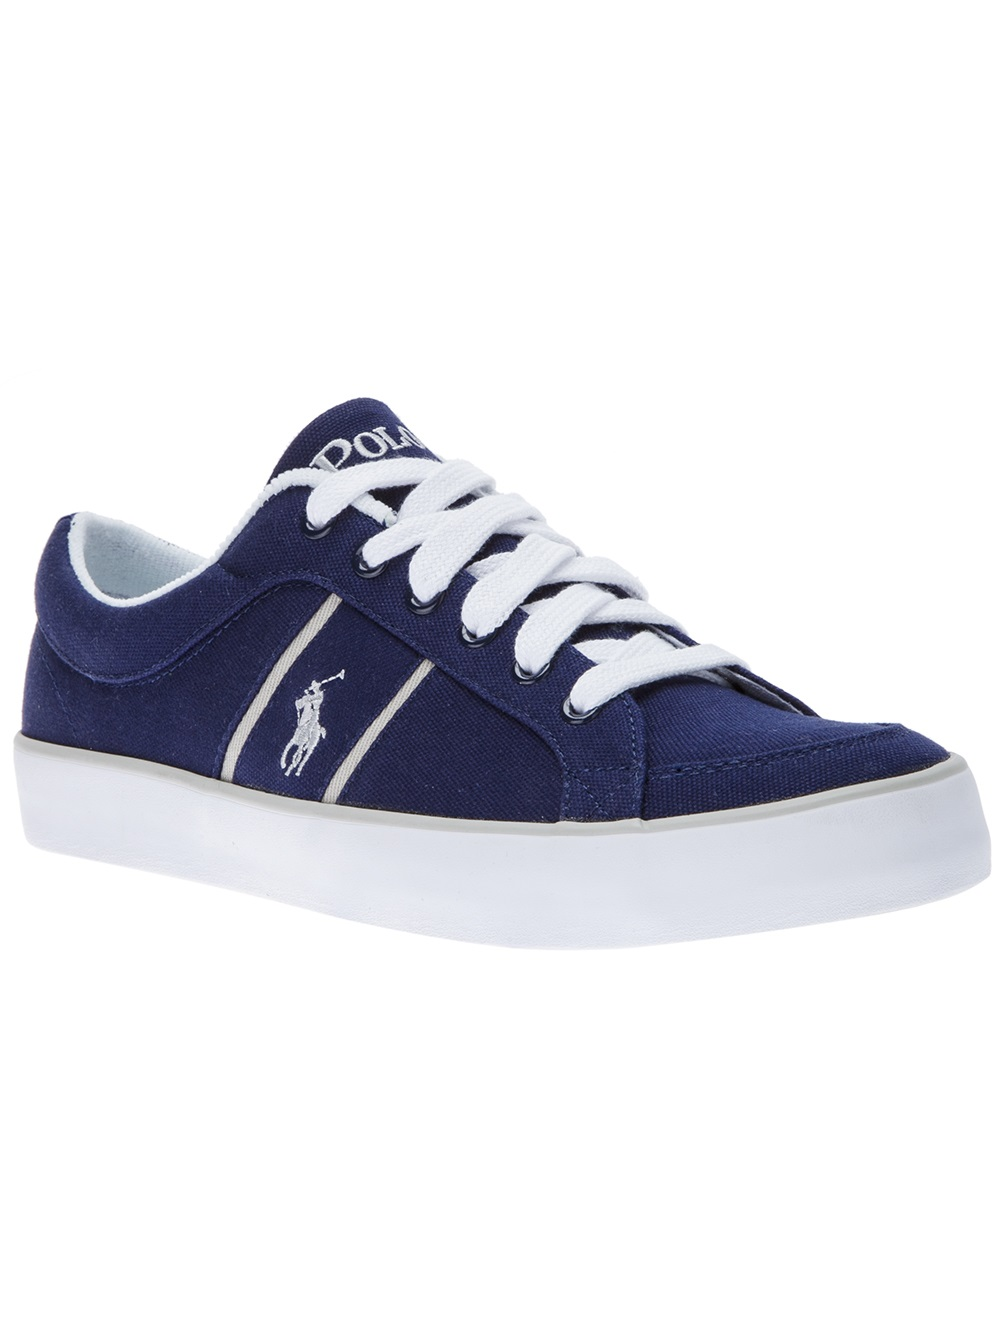 lyst polo ralph lauren bolingbrook sneaker in blue for men. Black Bedroom Furniture Sets. Home Design Ideas